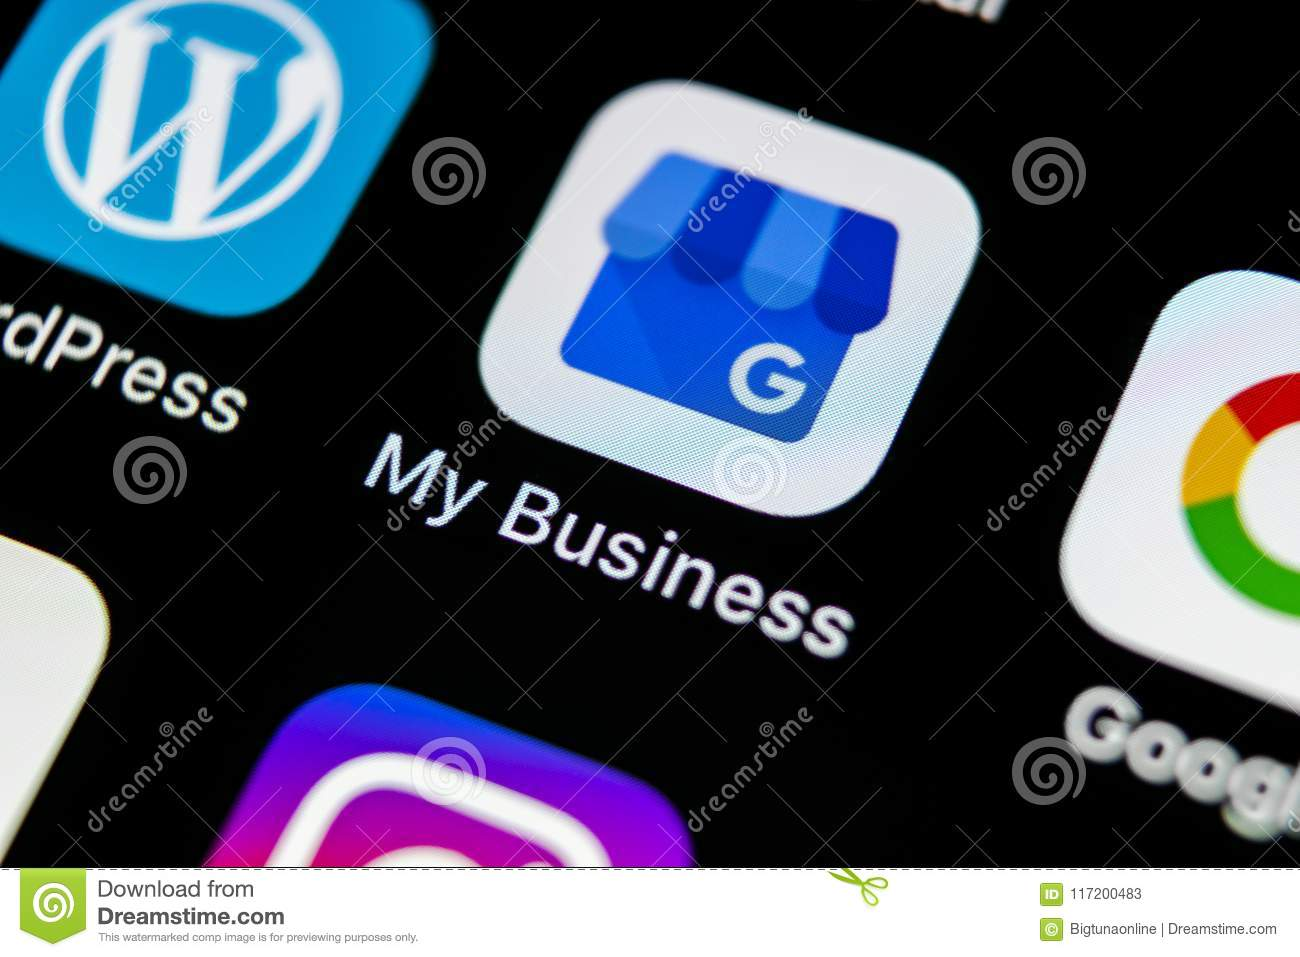 Google My Business application icon on Apple iPhone X screen close-up. Google My Business icon. Google My business application. So